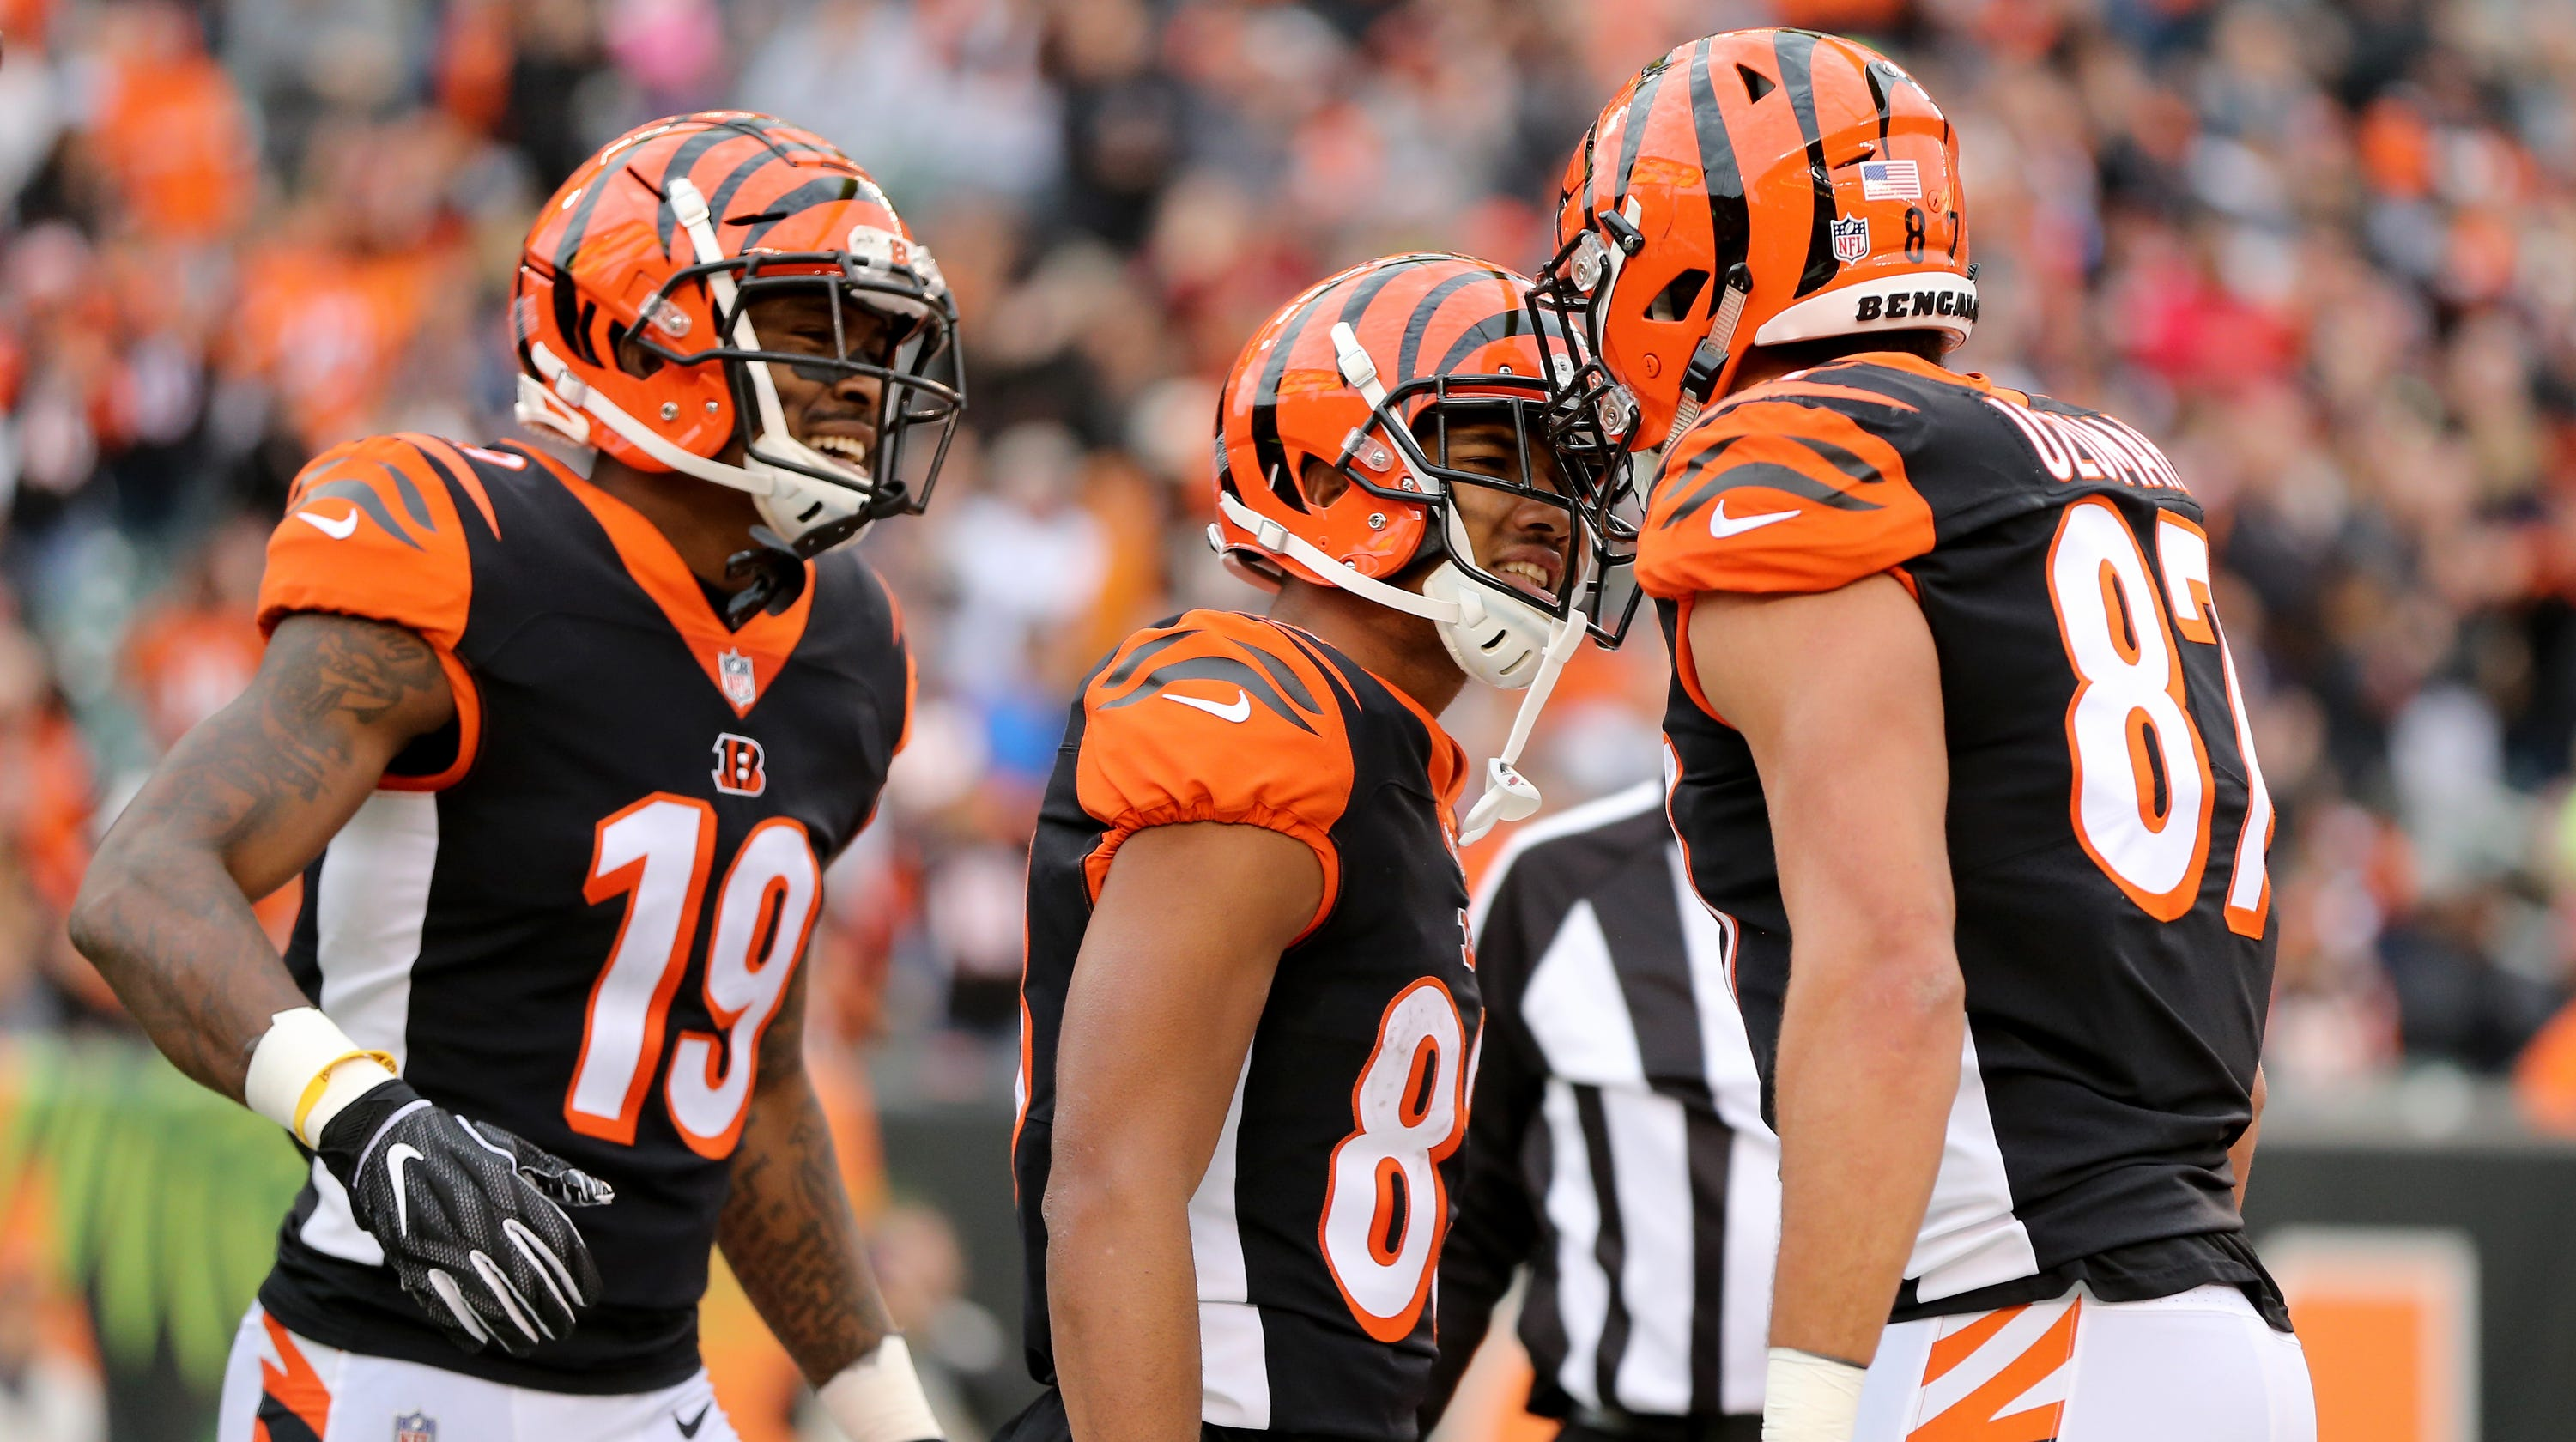 half off 610c1 da0bb Cincinnati Bengals vs. Denver Broncos: TV, odds, history and ...